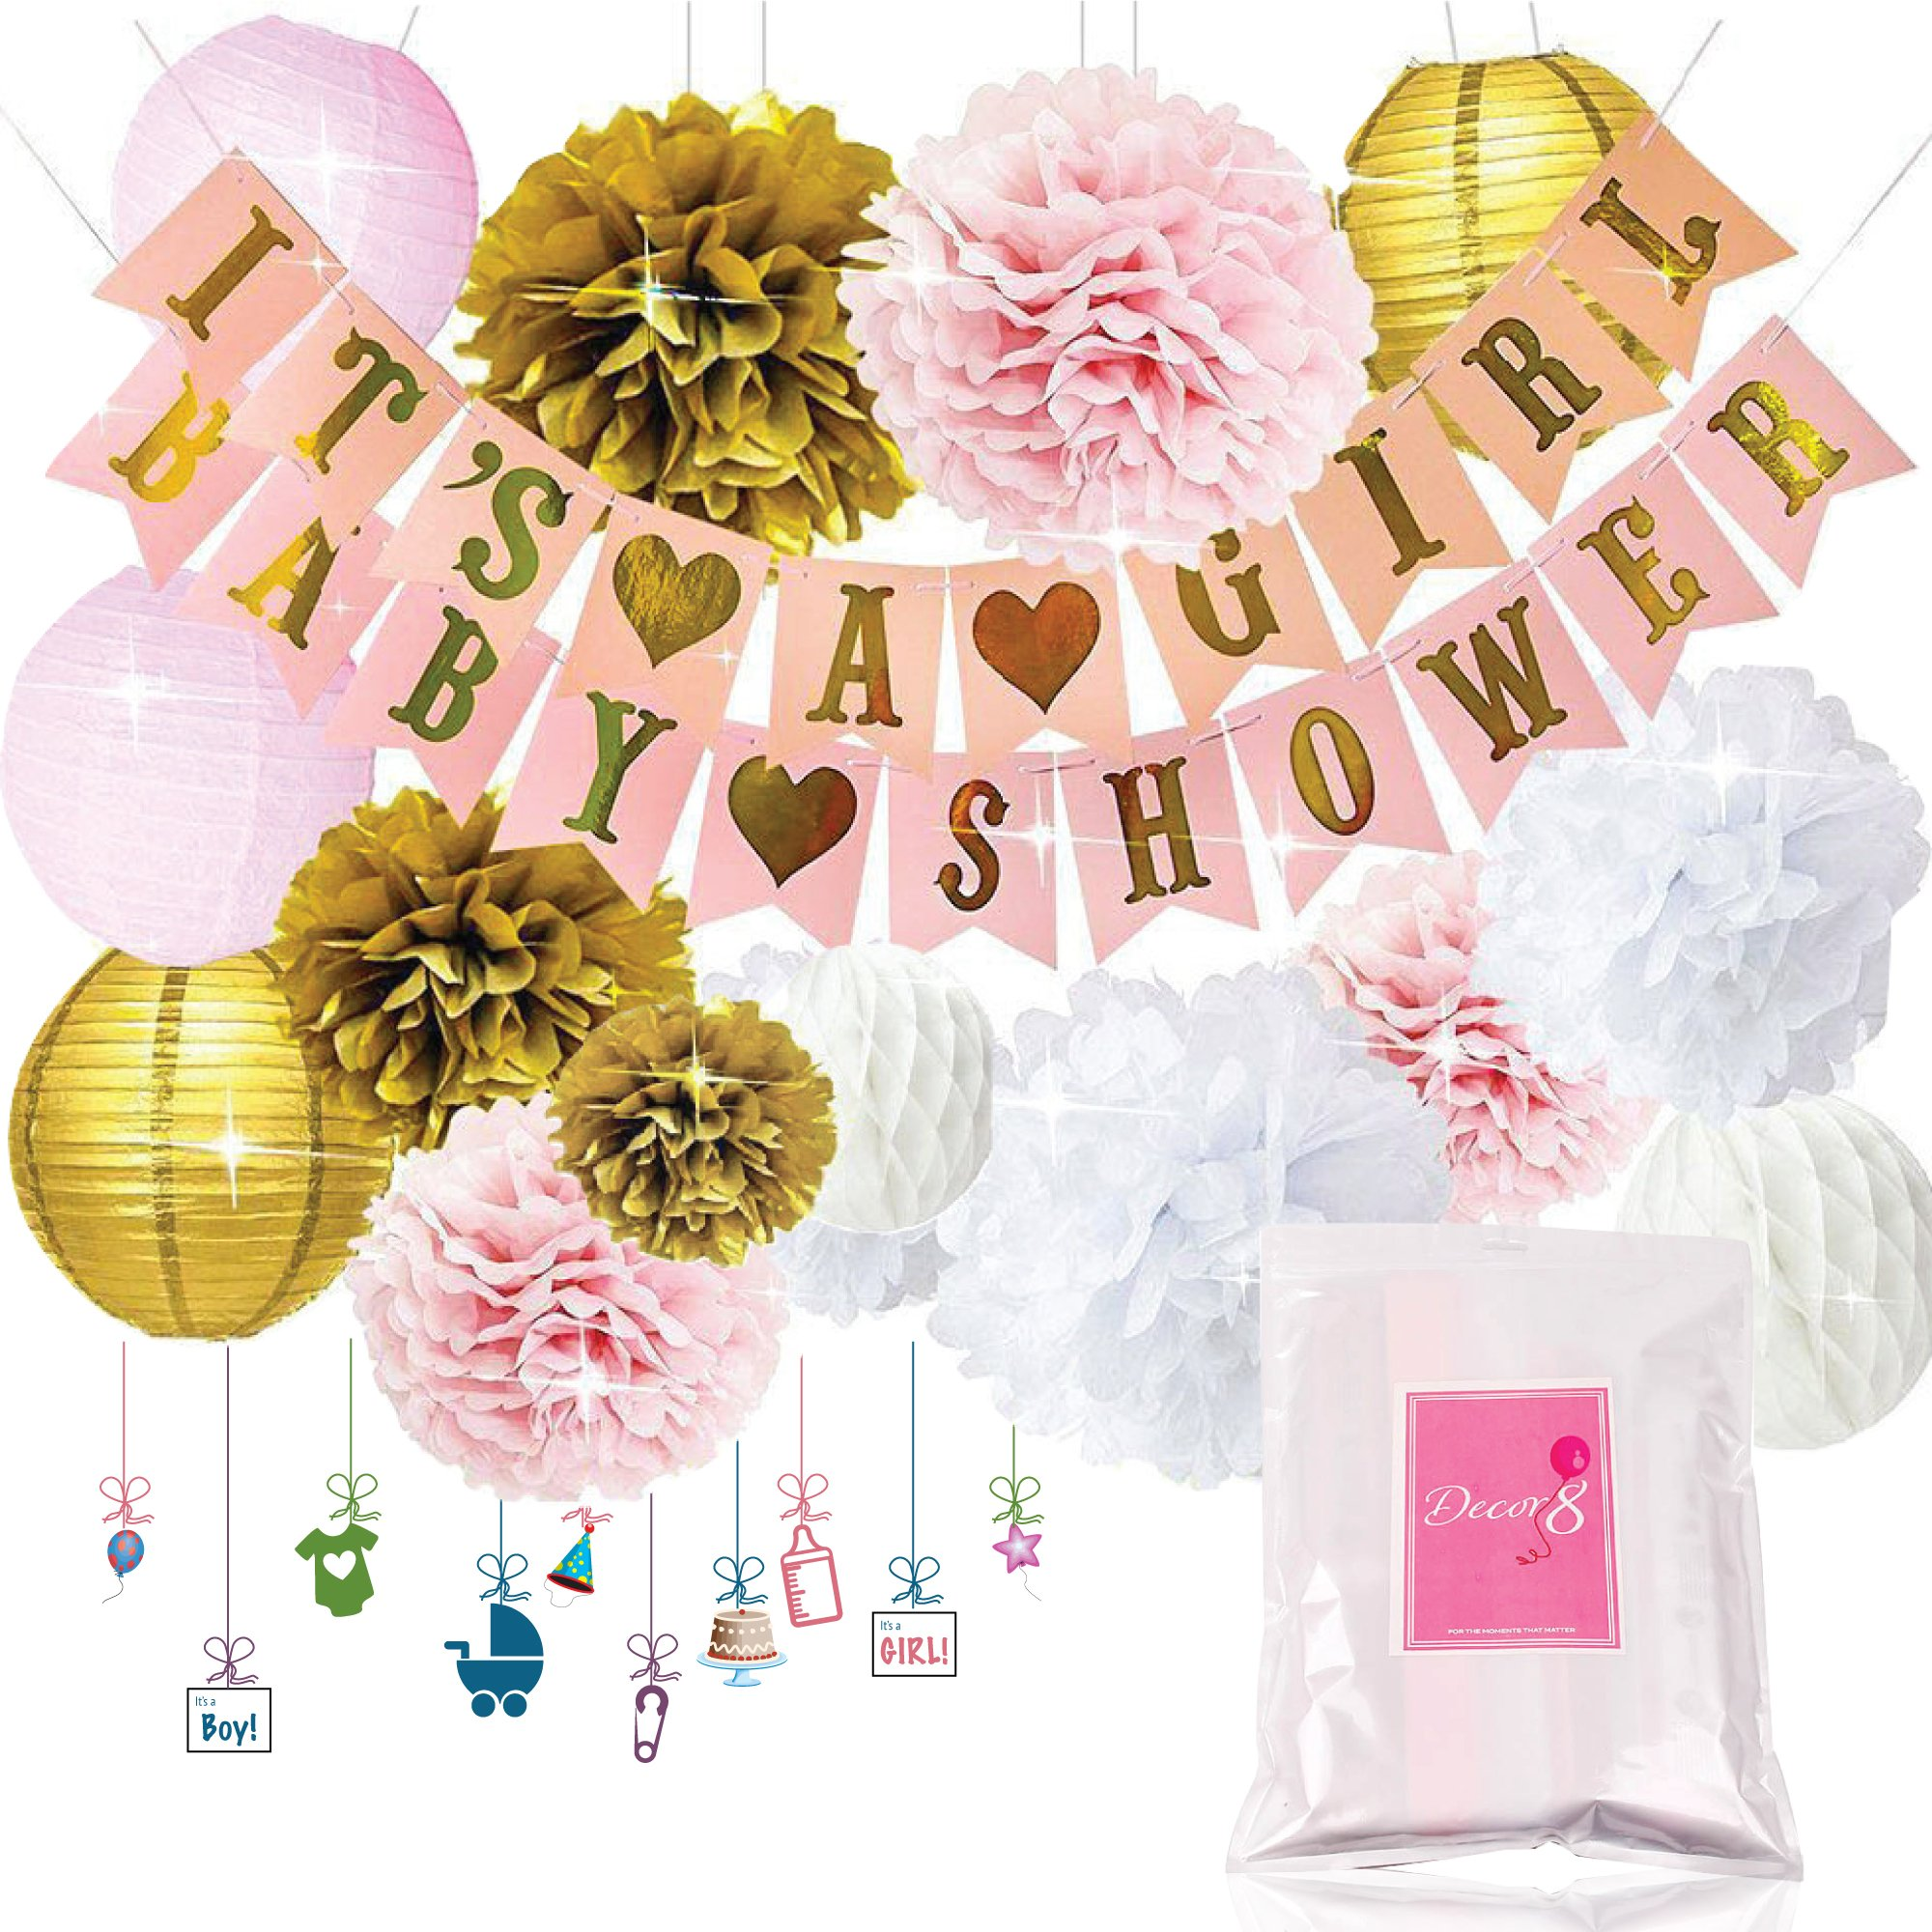 Baby Shower Decorations IT'S A GIRL & BABY SHOWER Banners, Lanterns, Pom Poms, and Honeycomb Balls. FREE Printable Decoration eBook. Pink Rose Cream Gold & White Nursery Room Decor for Babies - Decor8